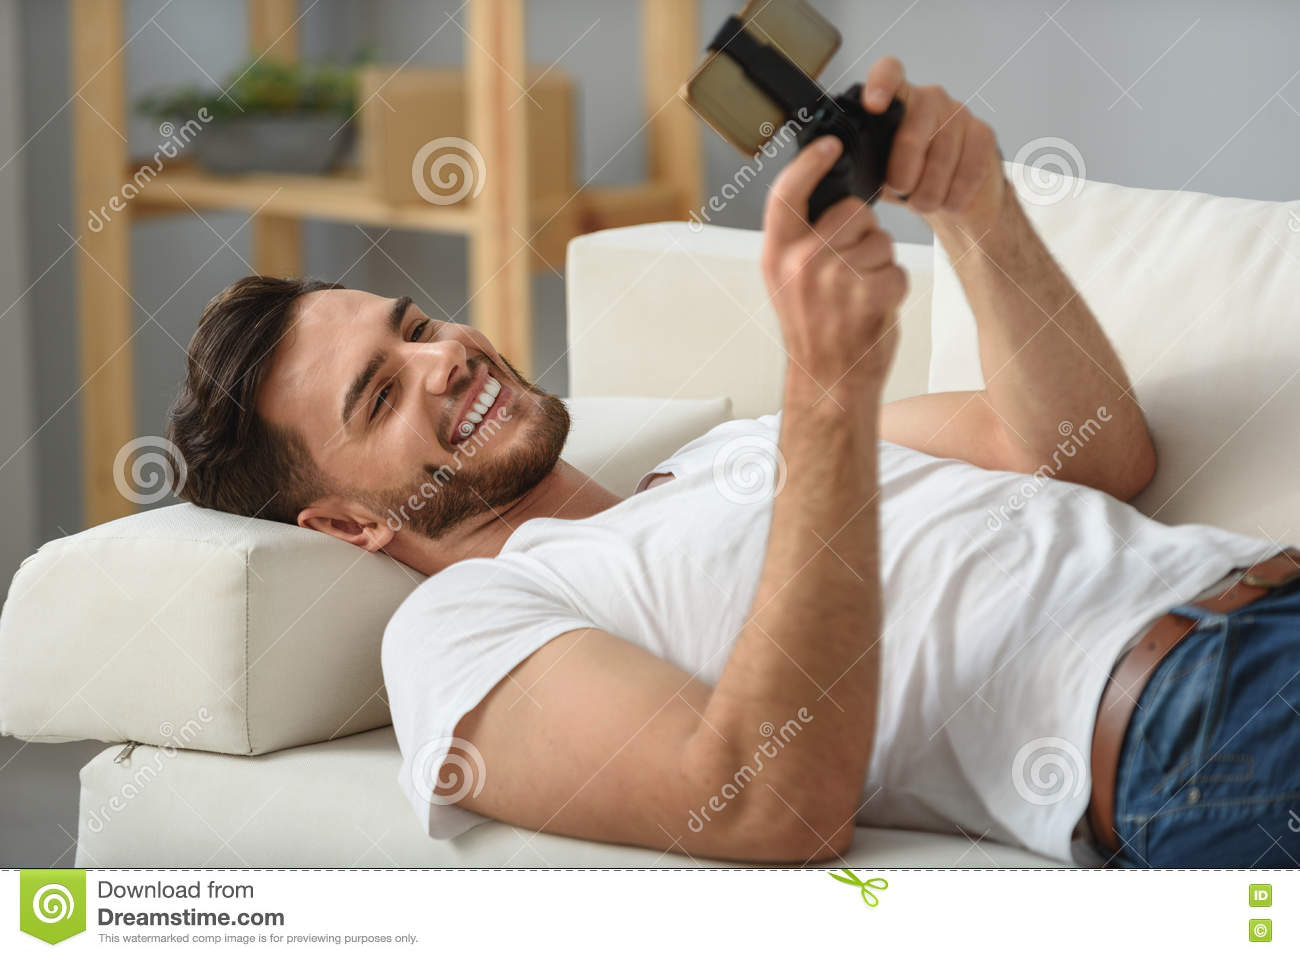 Bearded Guy Lying With Phone On A Couch Stock Photo - Image: 78946505